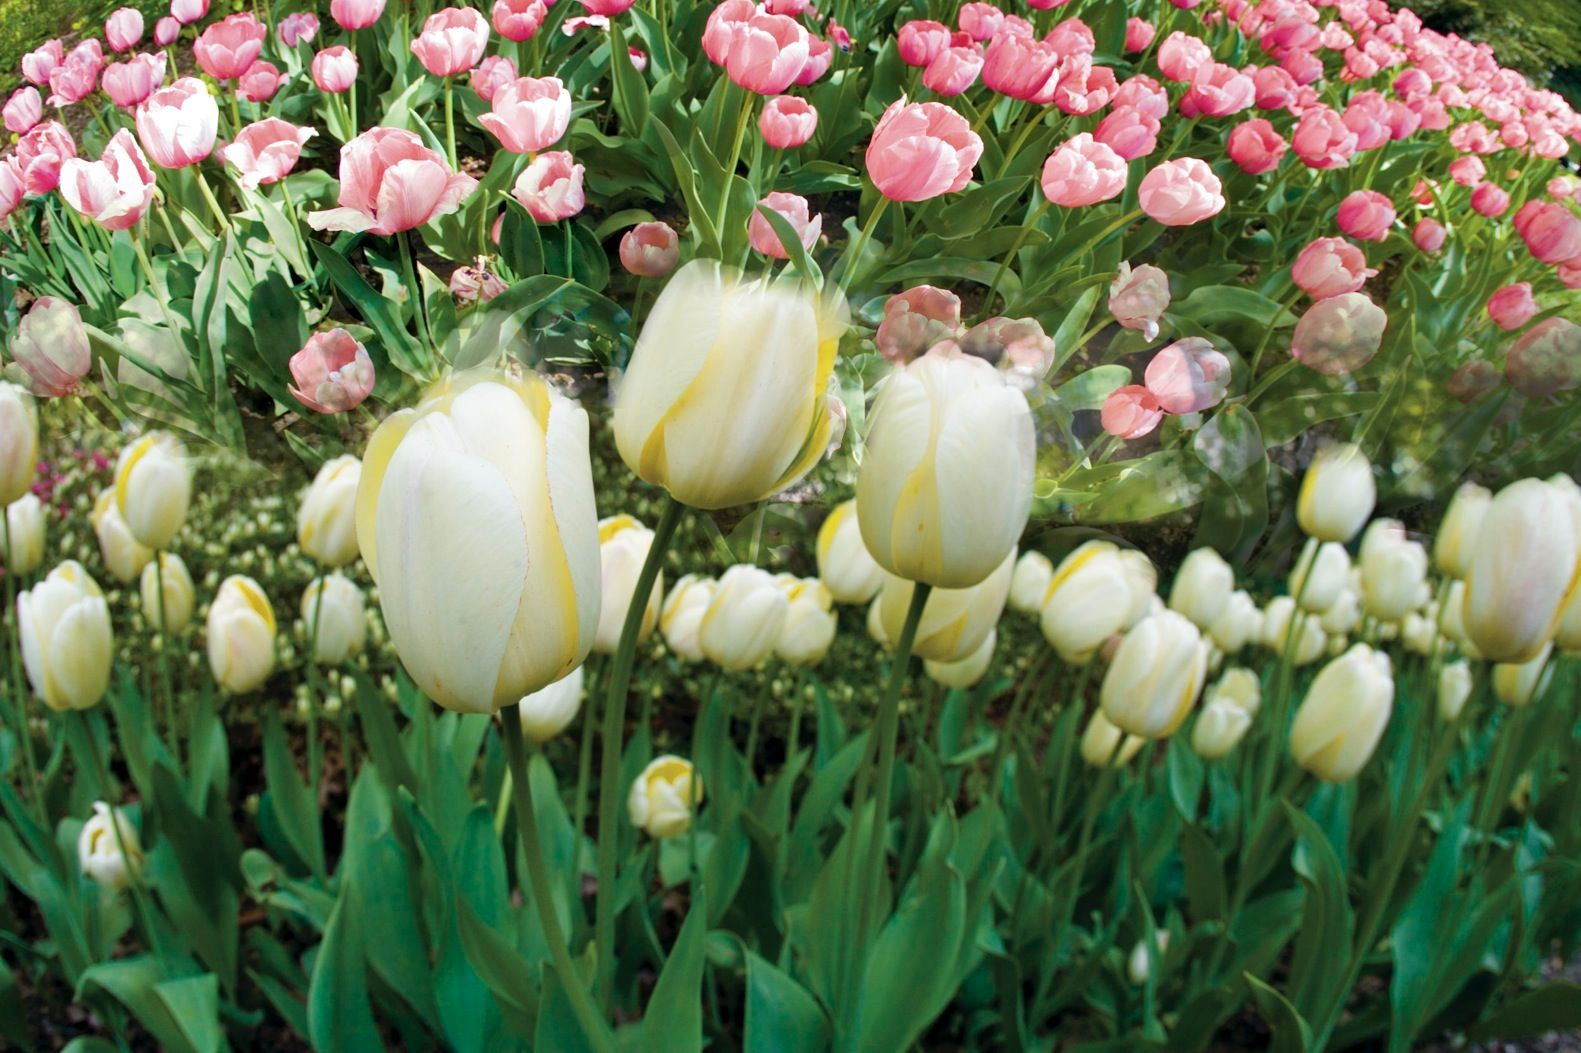 Pink & White Tulip Field